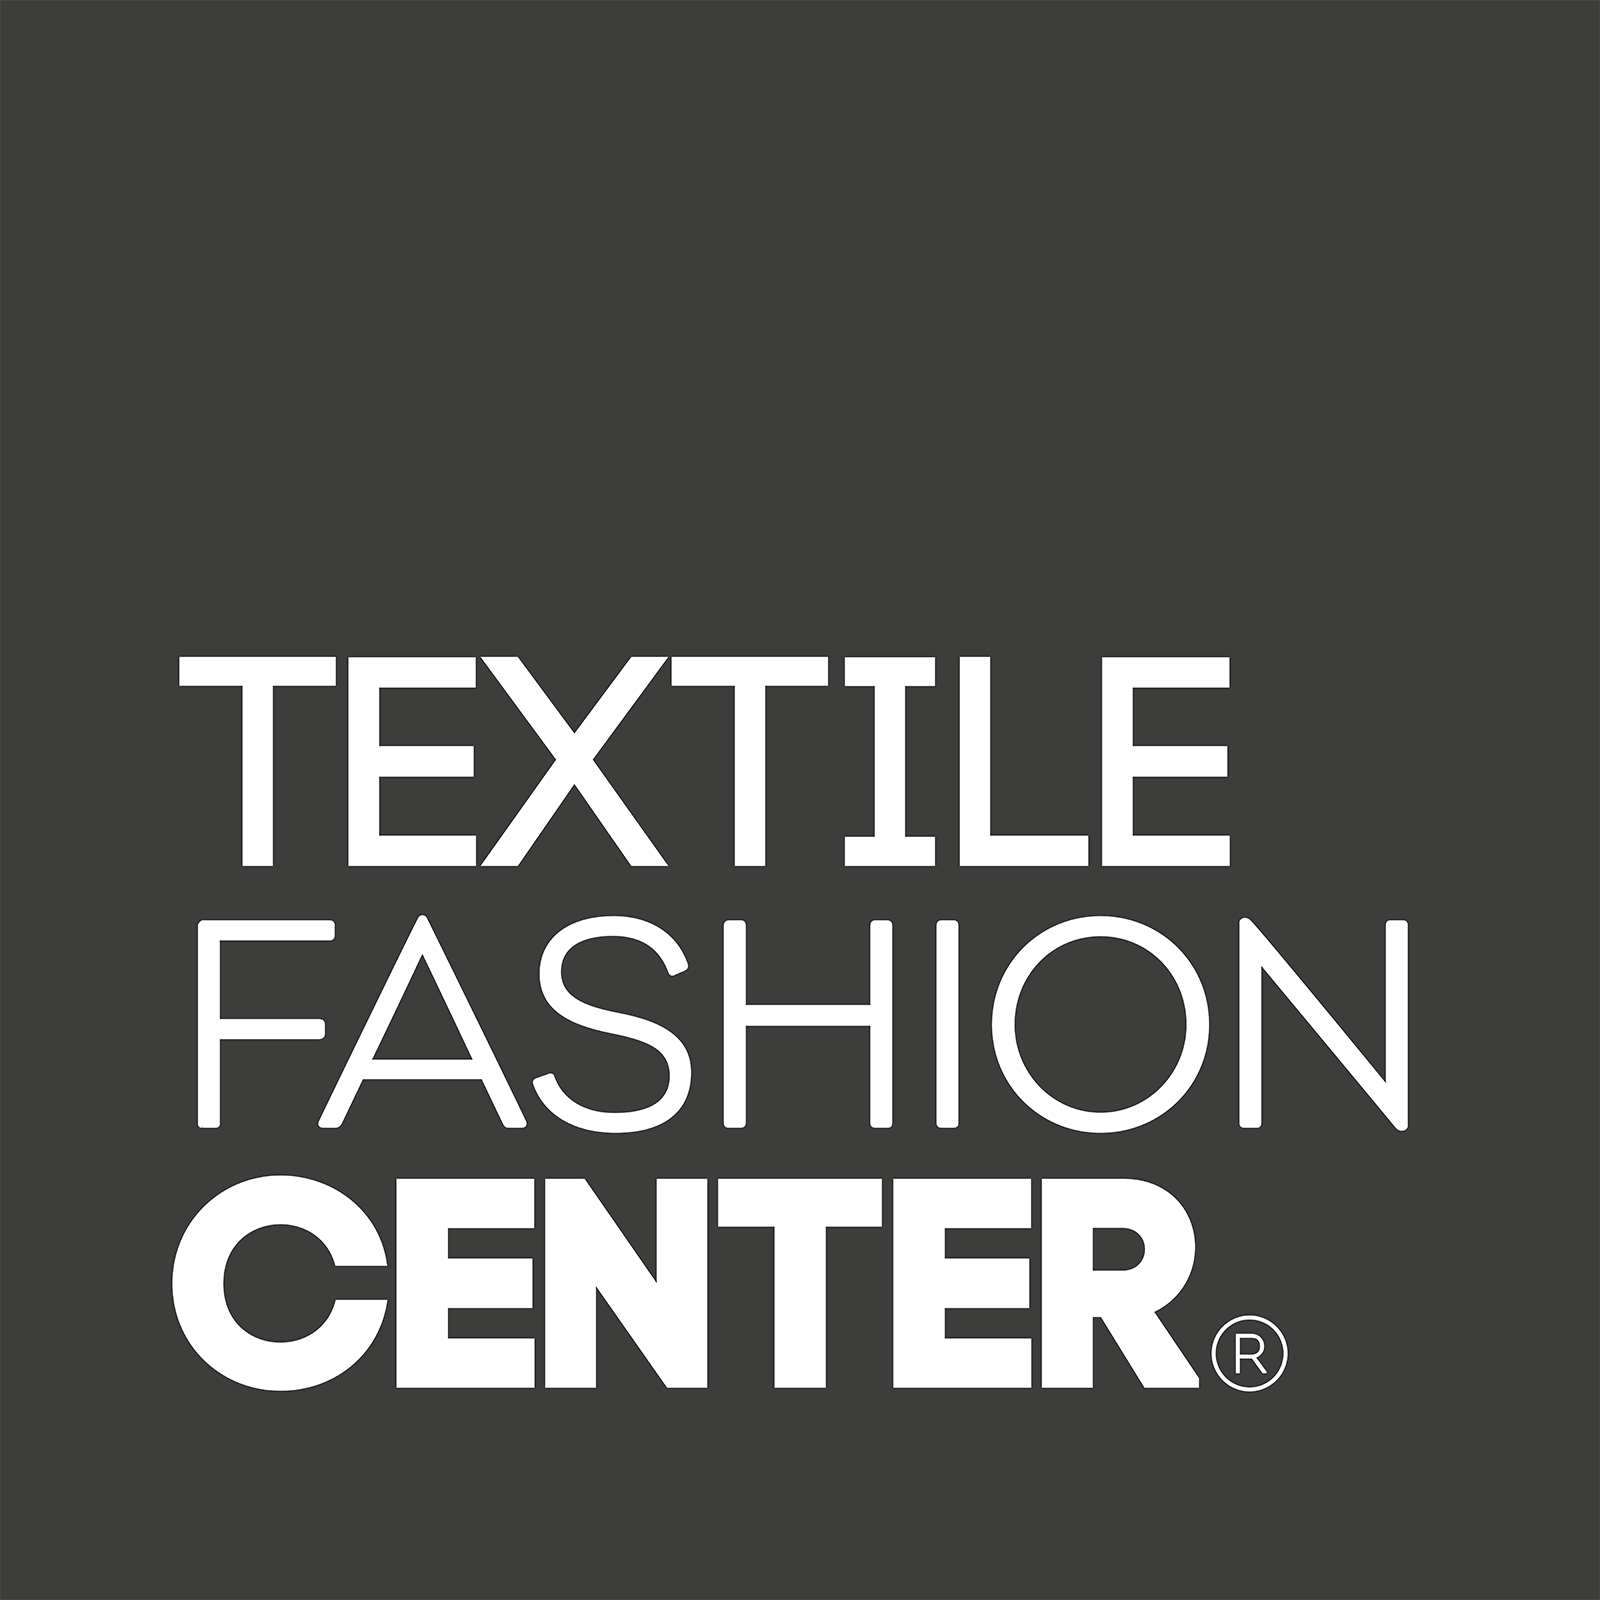 Textile Fashion Center